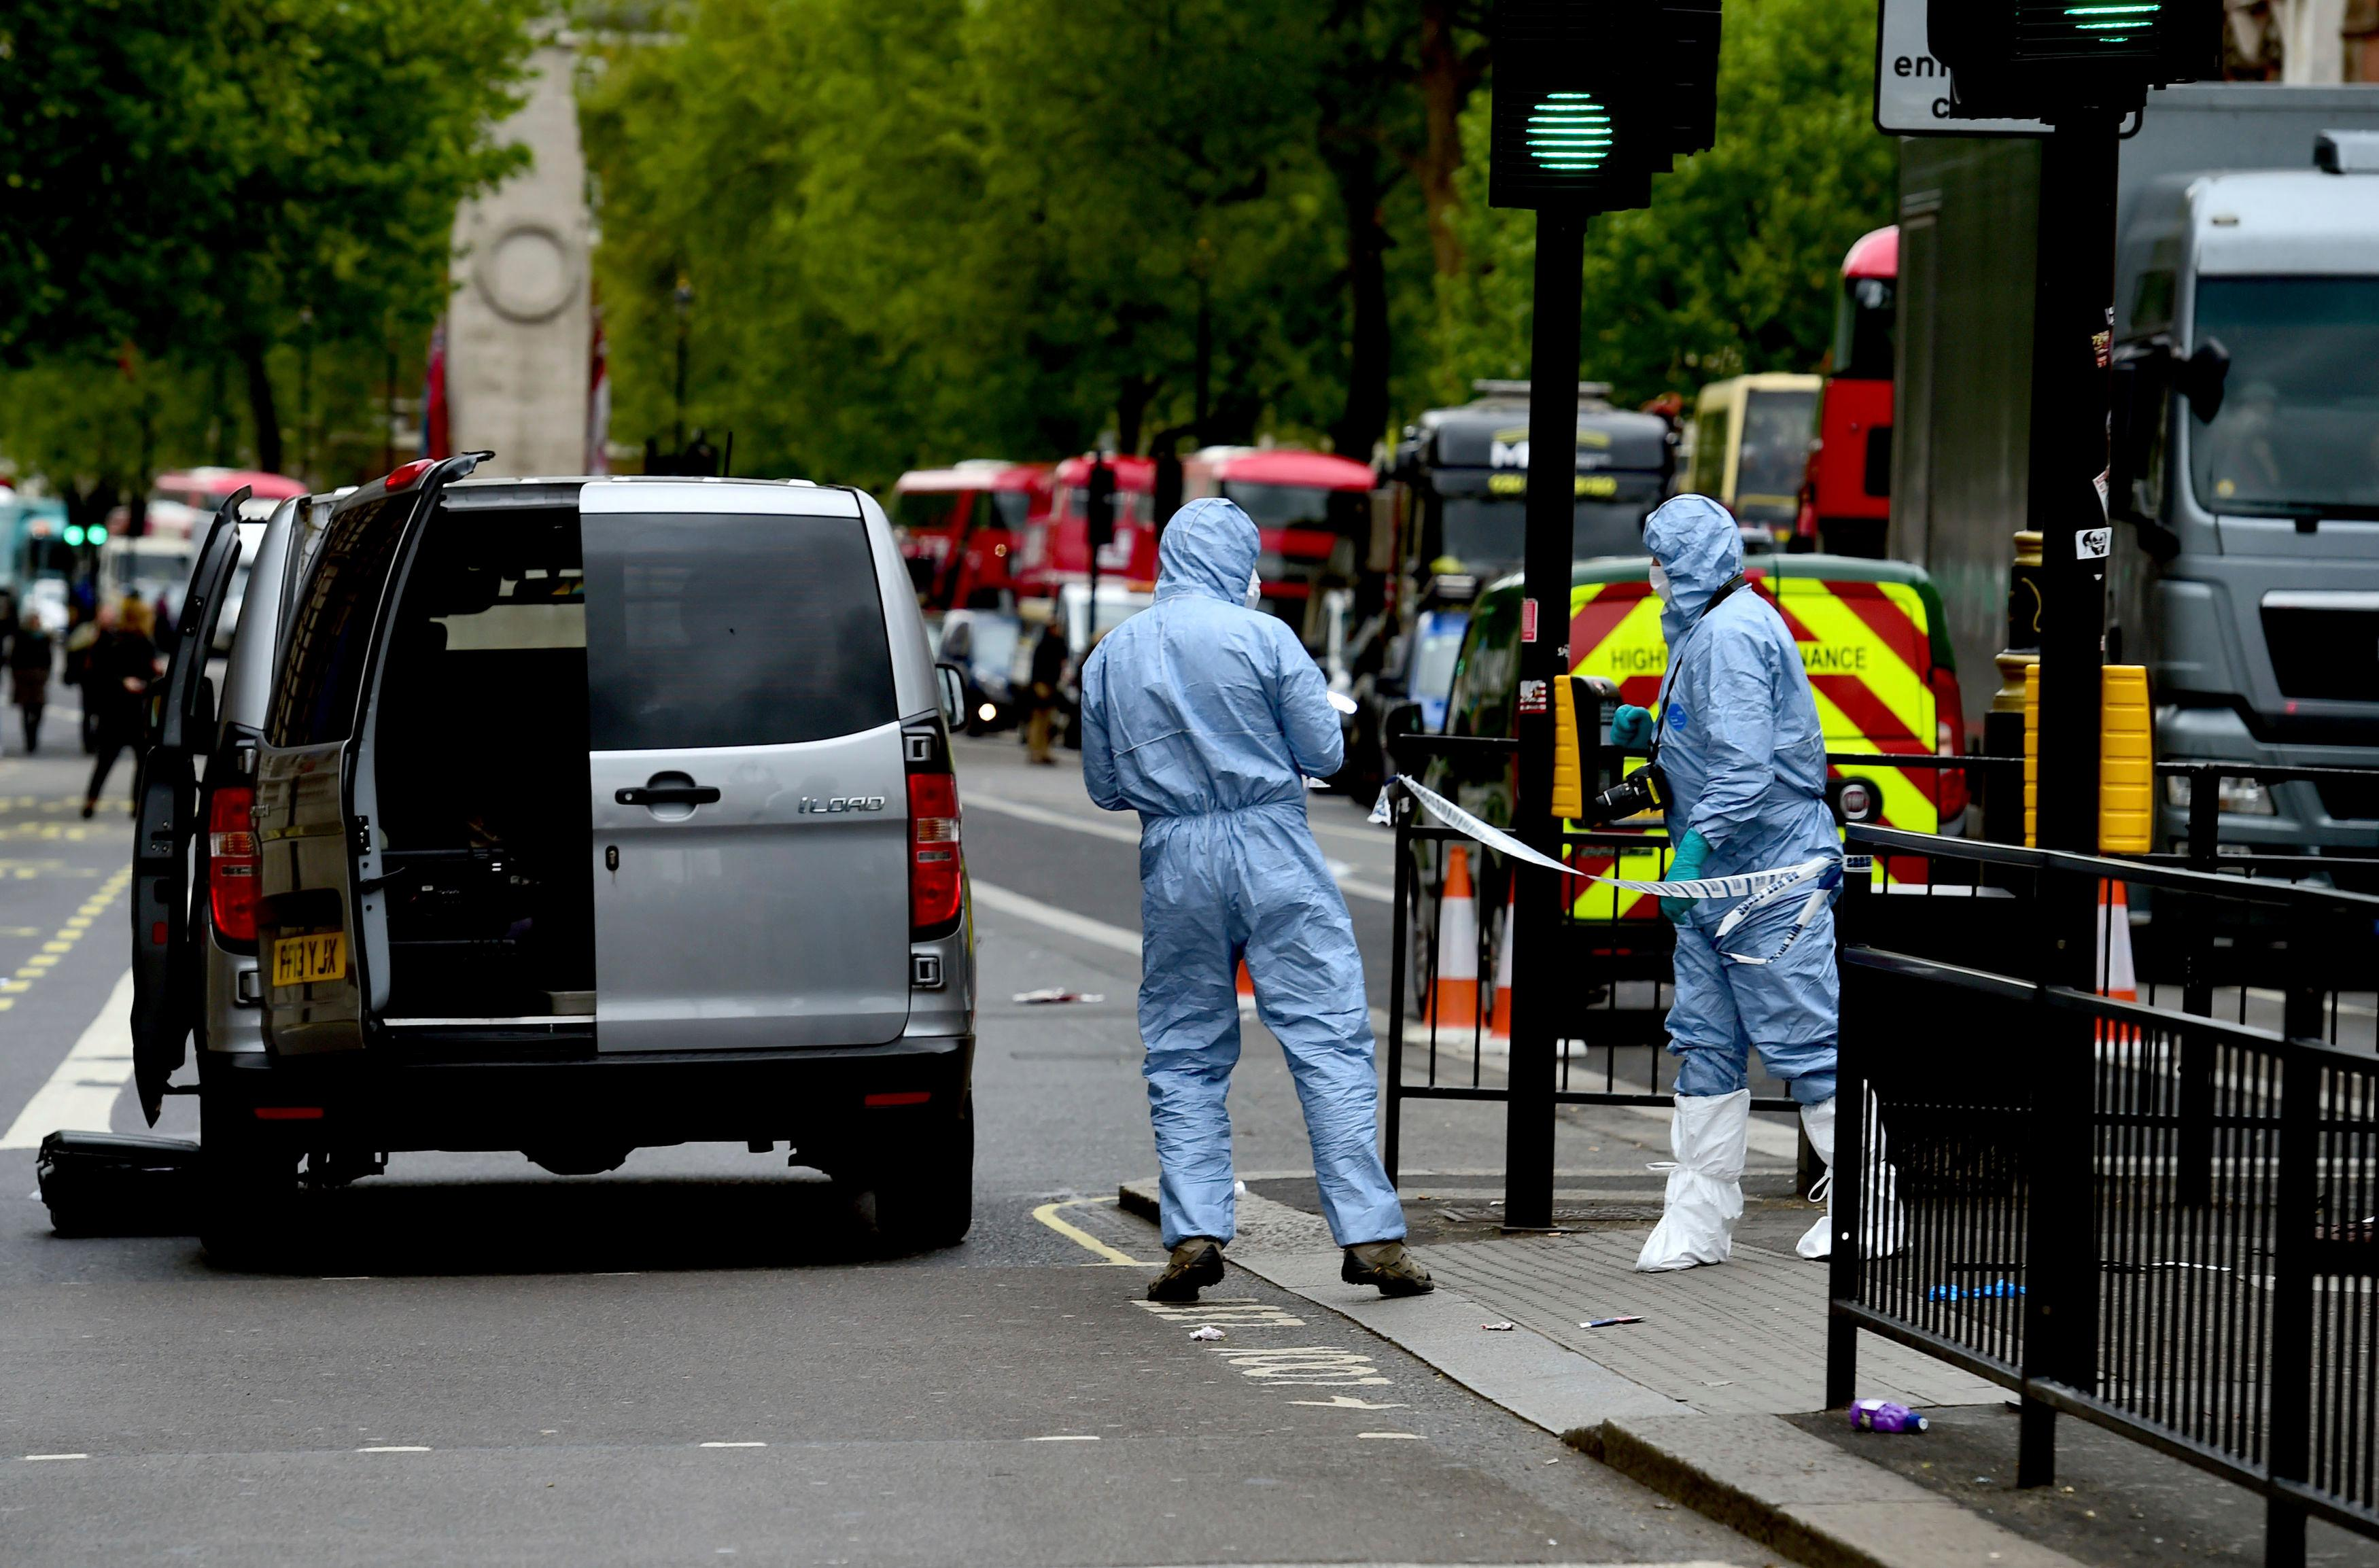 Police attend the scene after a person was arrested following an incident in Whitehall in London, Thursday April 27, 2017.  London police arrested a man for possession of weapons Thursday near Britain's Houses of Parliament. (Dominic Lipinski/PA via AP)